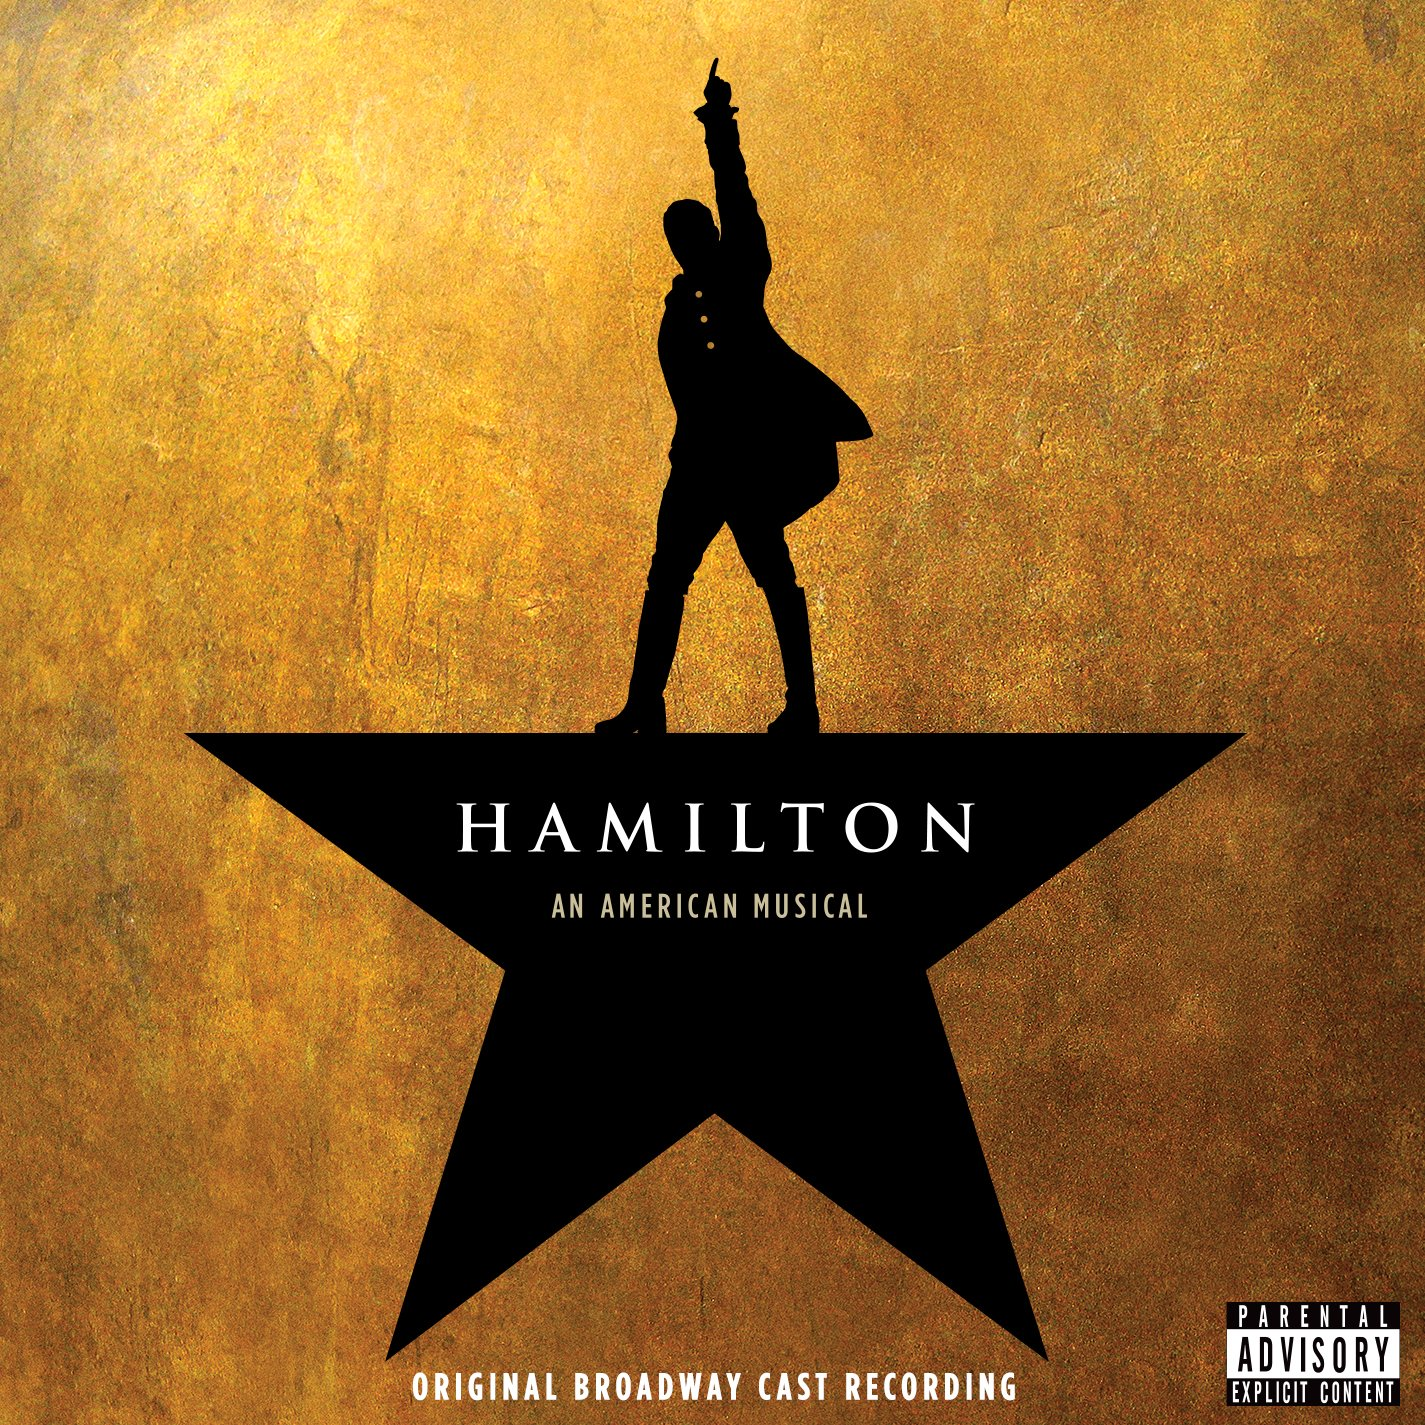 bande originale soundtrack ost score hamilton disney